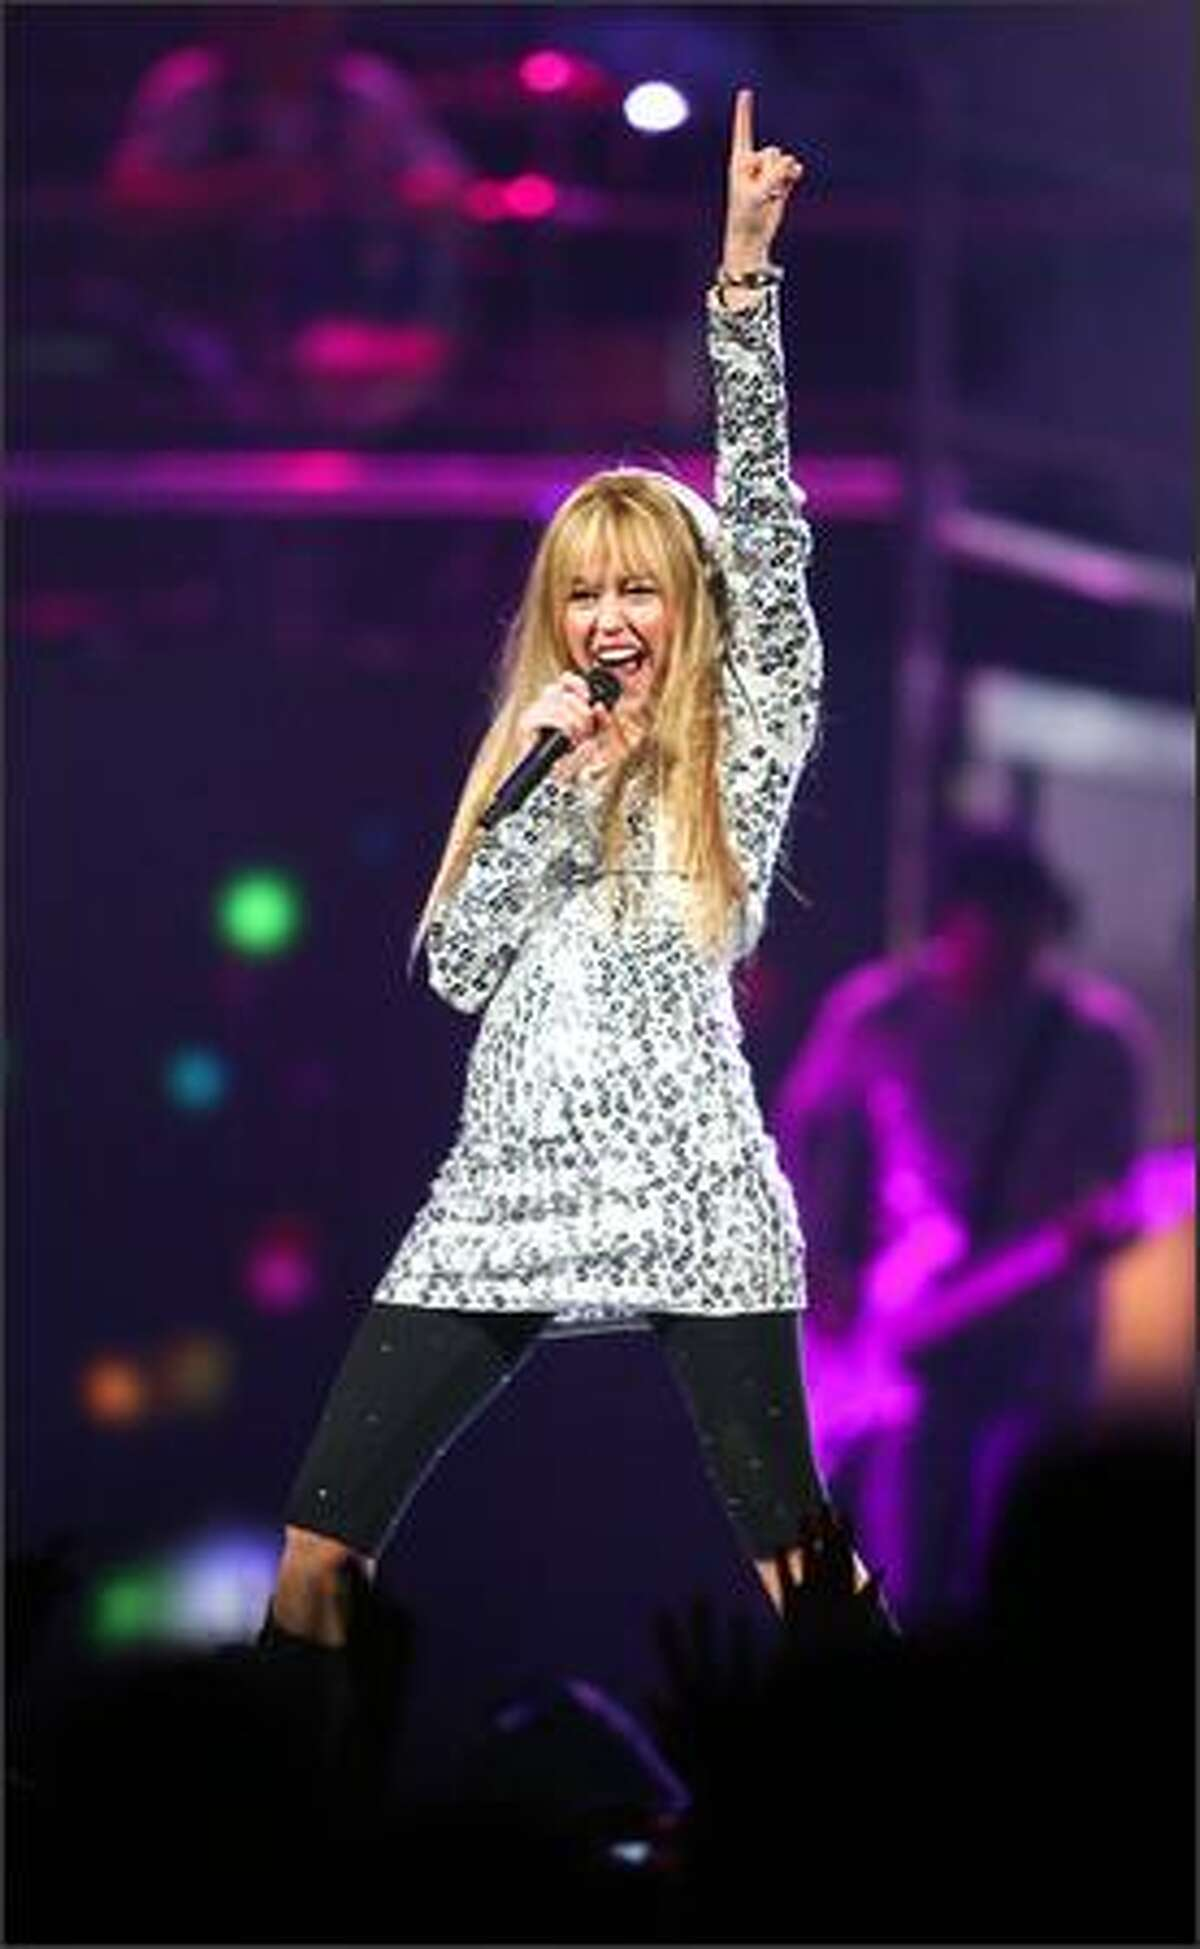 Miley Cyrus aka Hannah Montana performs during her concert at Key Arena.